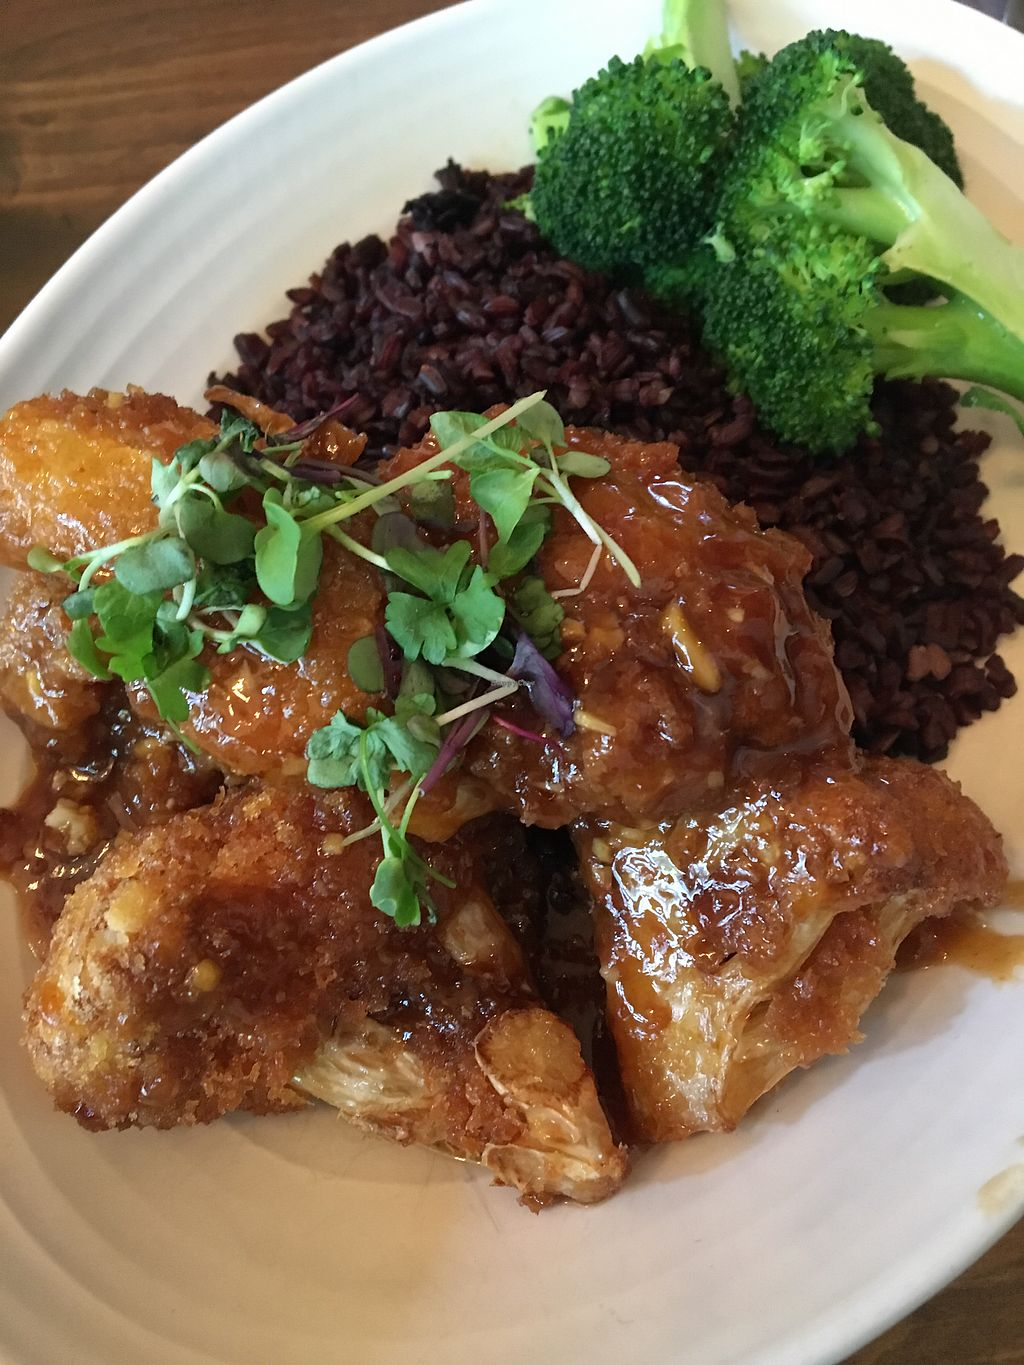 "Photo of Plum Bistro  by <a href=""/members/profile/AriTravels"">AriTravels</a> <br/>General tso cauliflower soooo crispy with forbidden rice <br/> October 20, 2017  - <a href='/contact/abuse/image/18615/316822'>Report</a>"